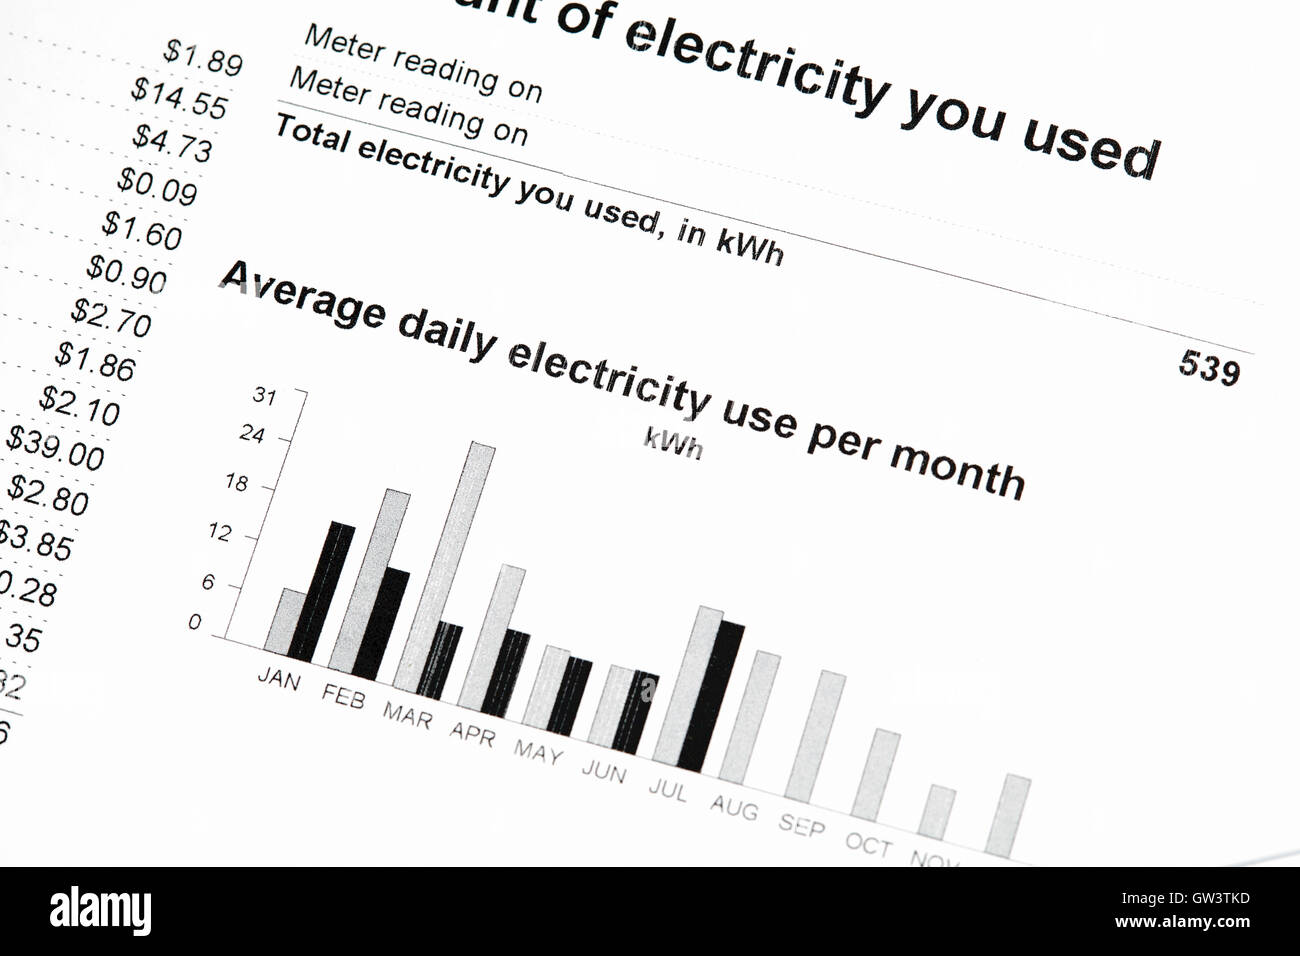 Close up of charges for electricity services on statement - Stock Image